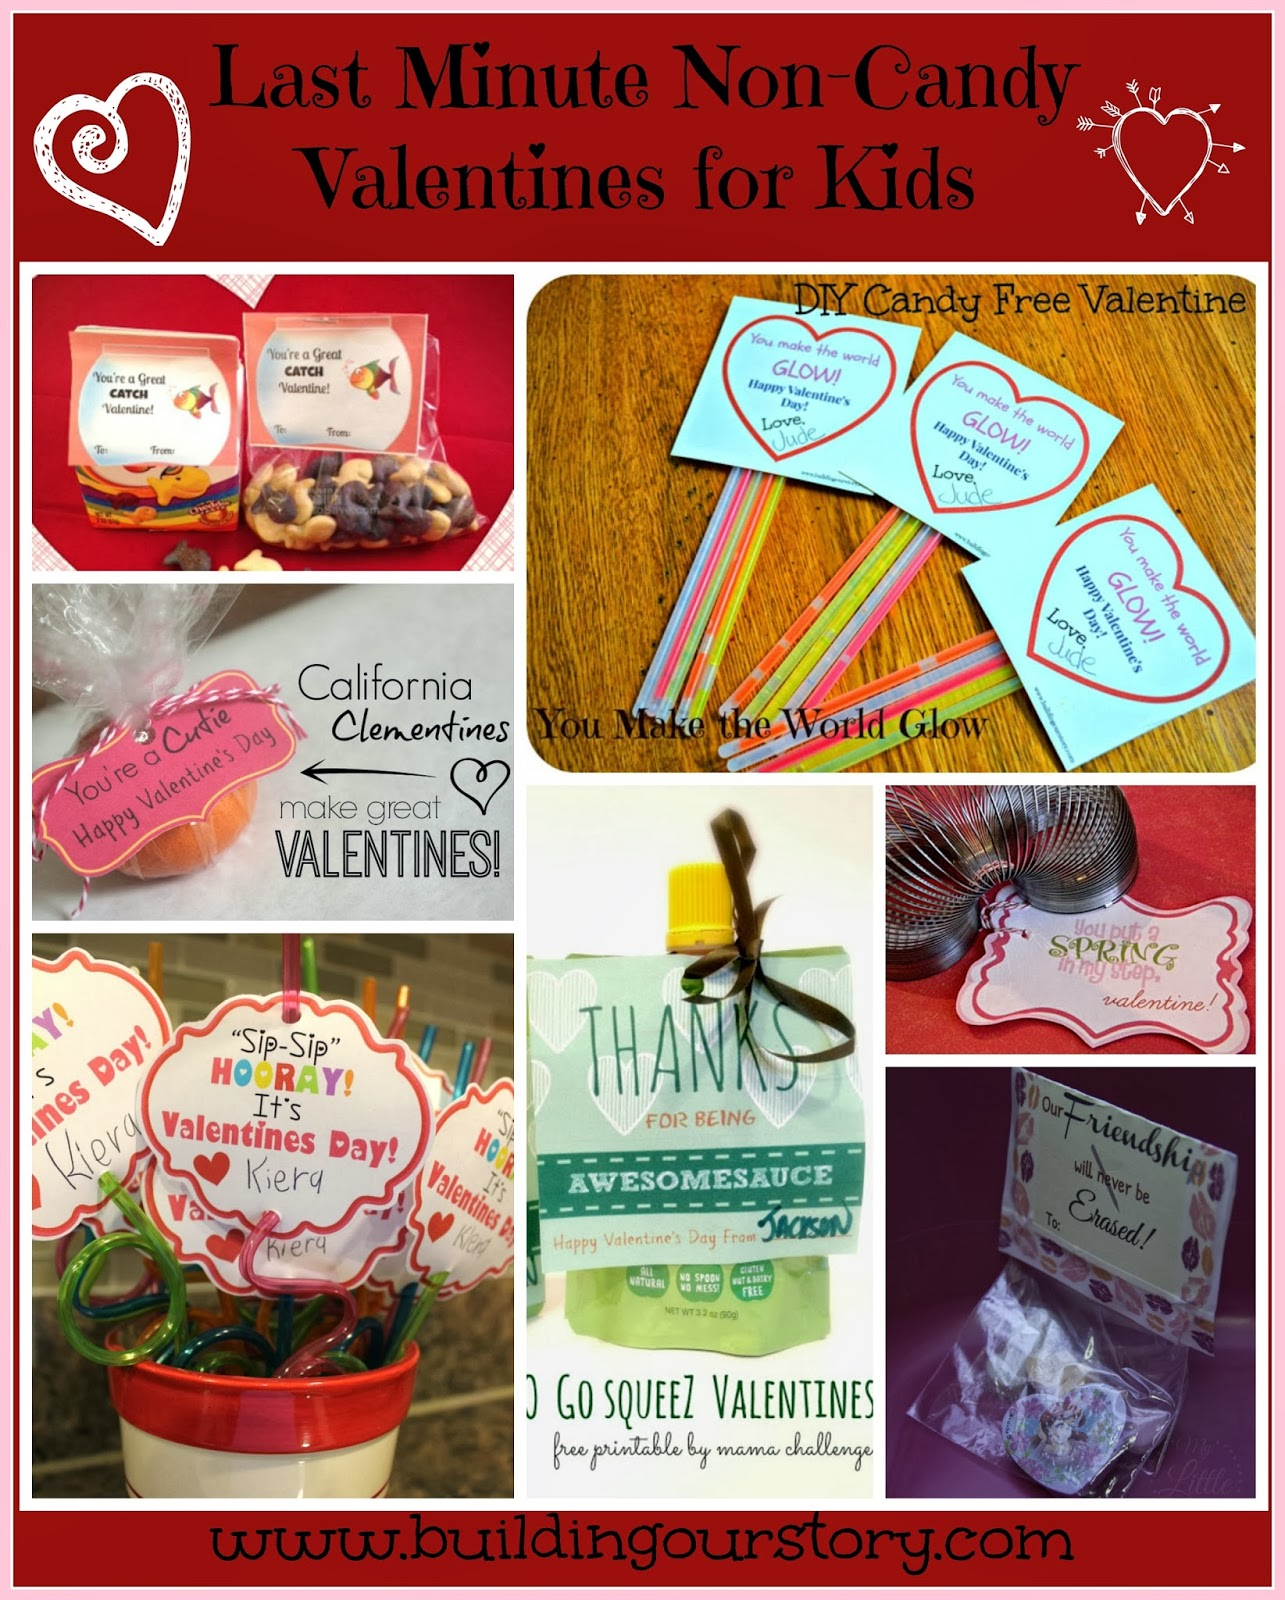 I Have Found Some Great DIY Valentine Ideas That Can Be Easily Created  Before The Big Day! Enjoy And Good Luck!!